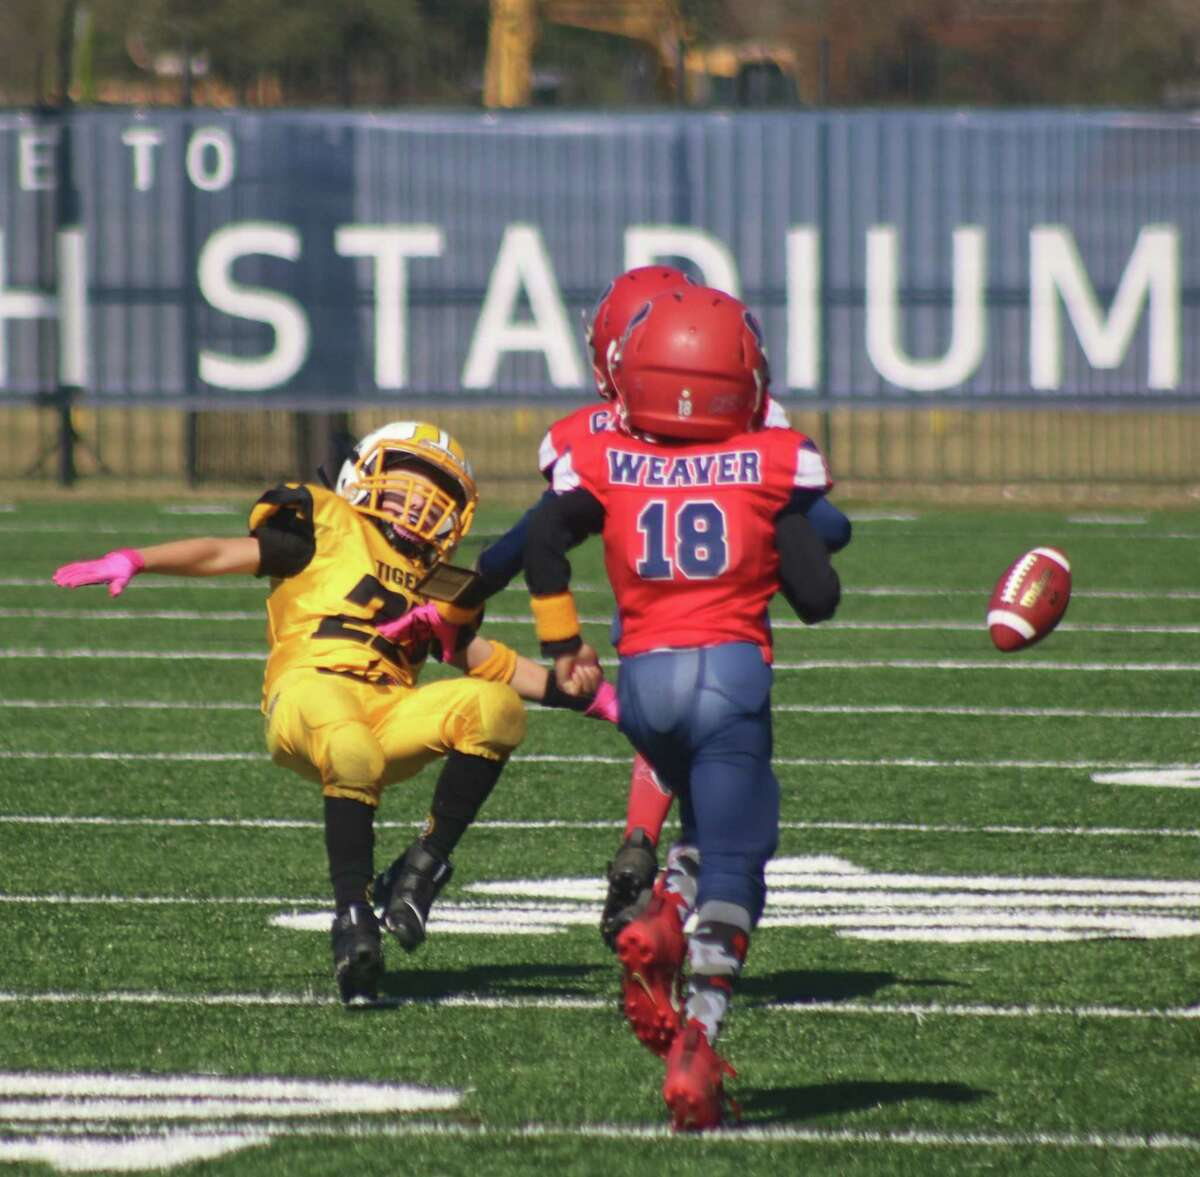 Deer Park Sophomore Tigers wide receiver Mason Holman is unable to haul in this deep pass during first-half action Saturday afternoon at Stallworth Stadium. One of the Texans defenders is Micah Weaver (18).